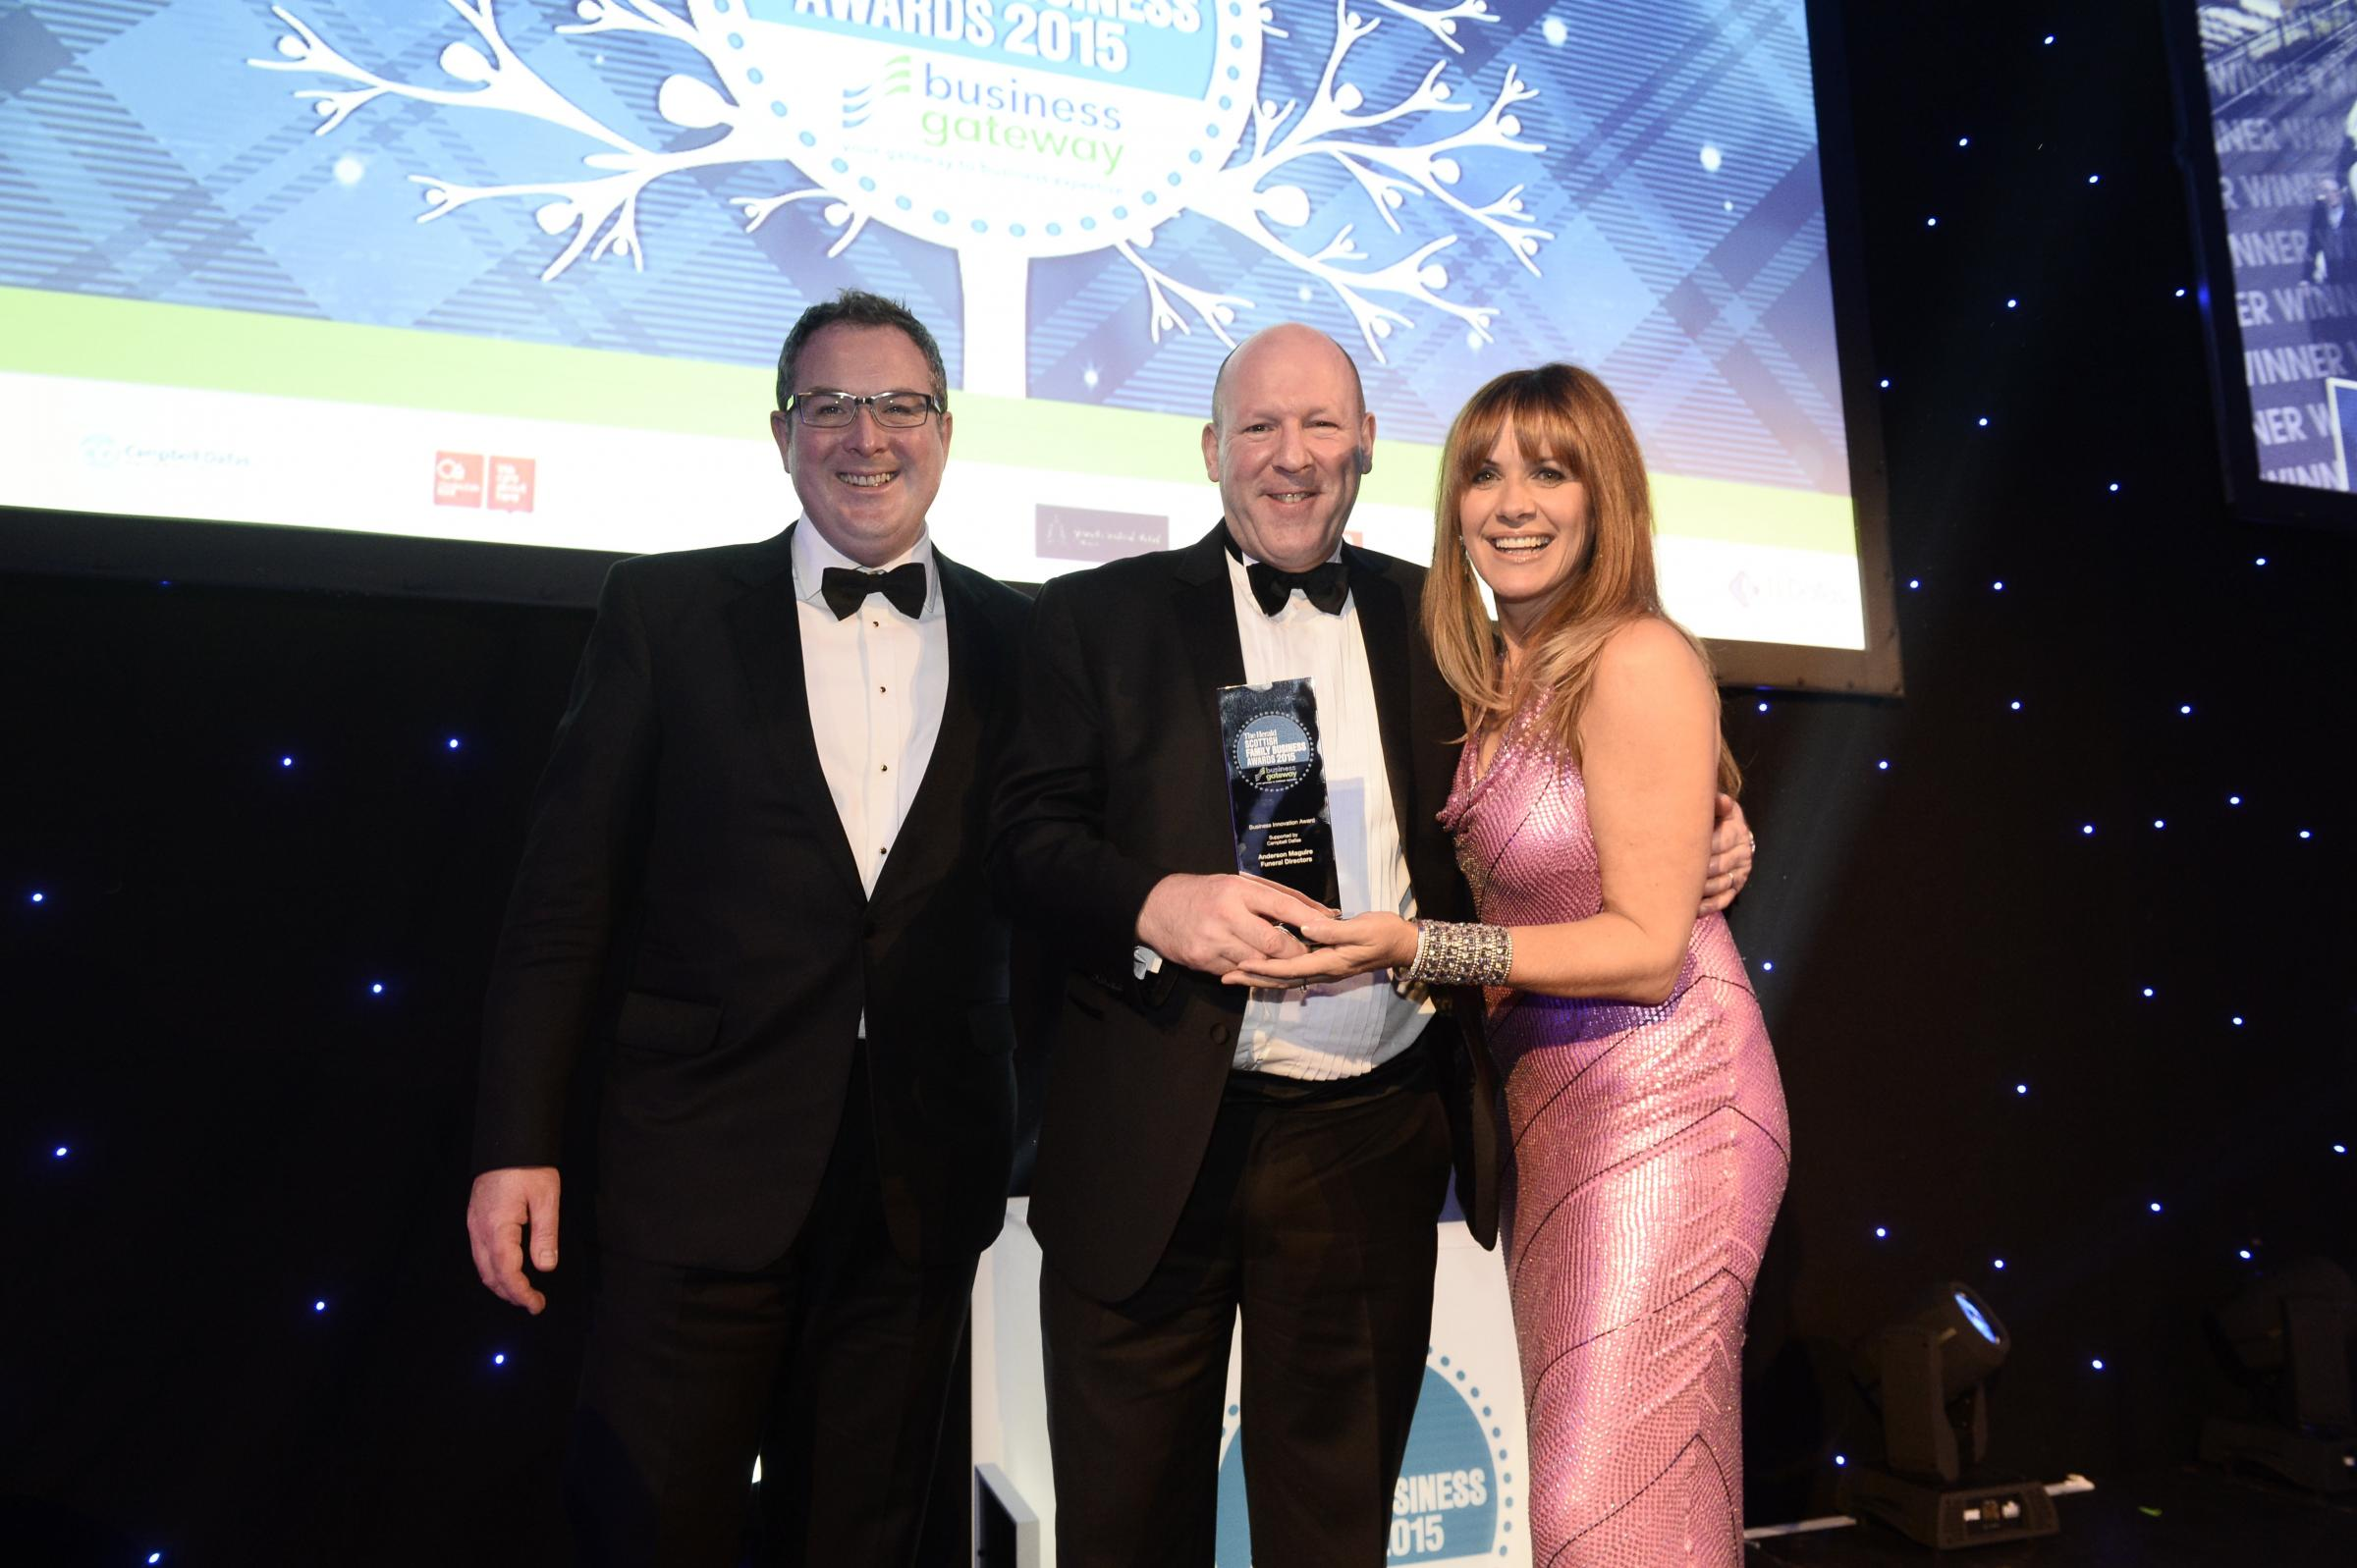 Fraser Campbell, left, with Anderson Maguire's Paul Webb and Carol Smillie at the 2015 awards.